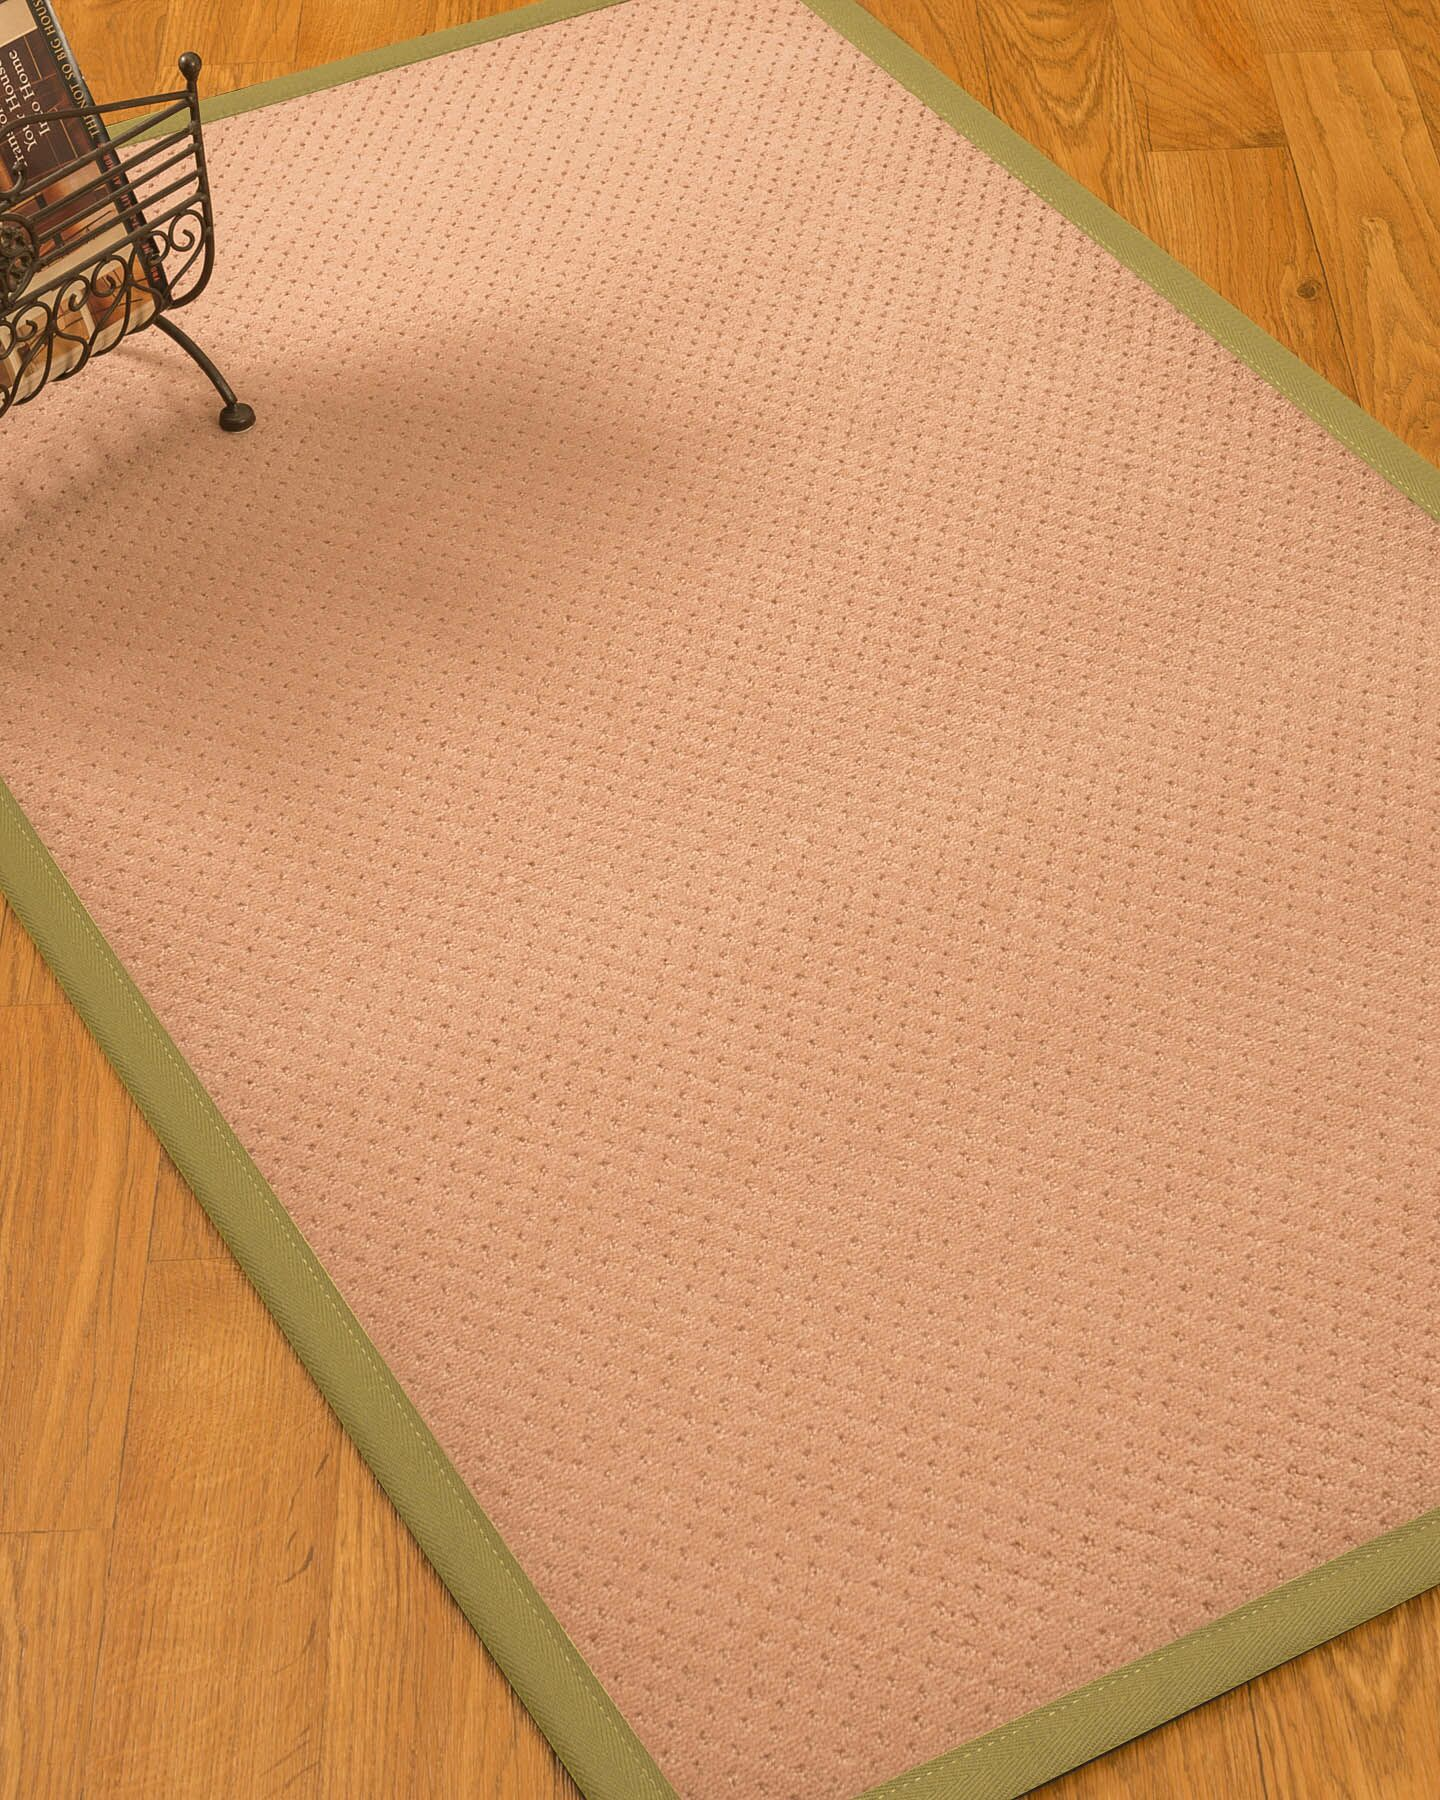 Farnham Border Hand-Woven Wool Pink/Natural Area Rug Rug Pad Included: No, Rug Size: Rectangle 3' x 5'